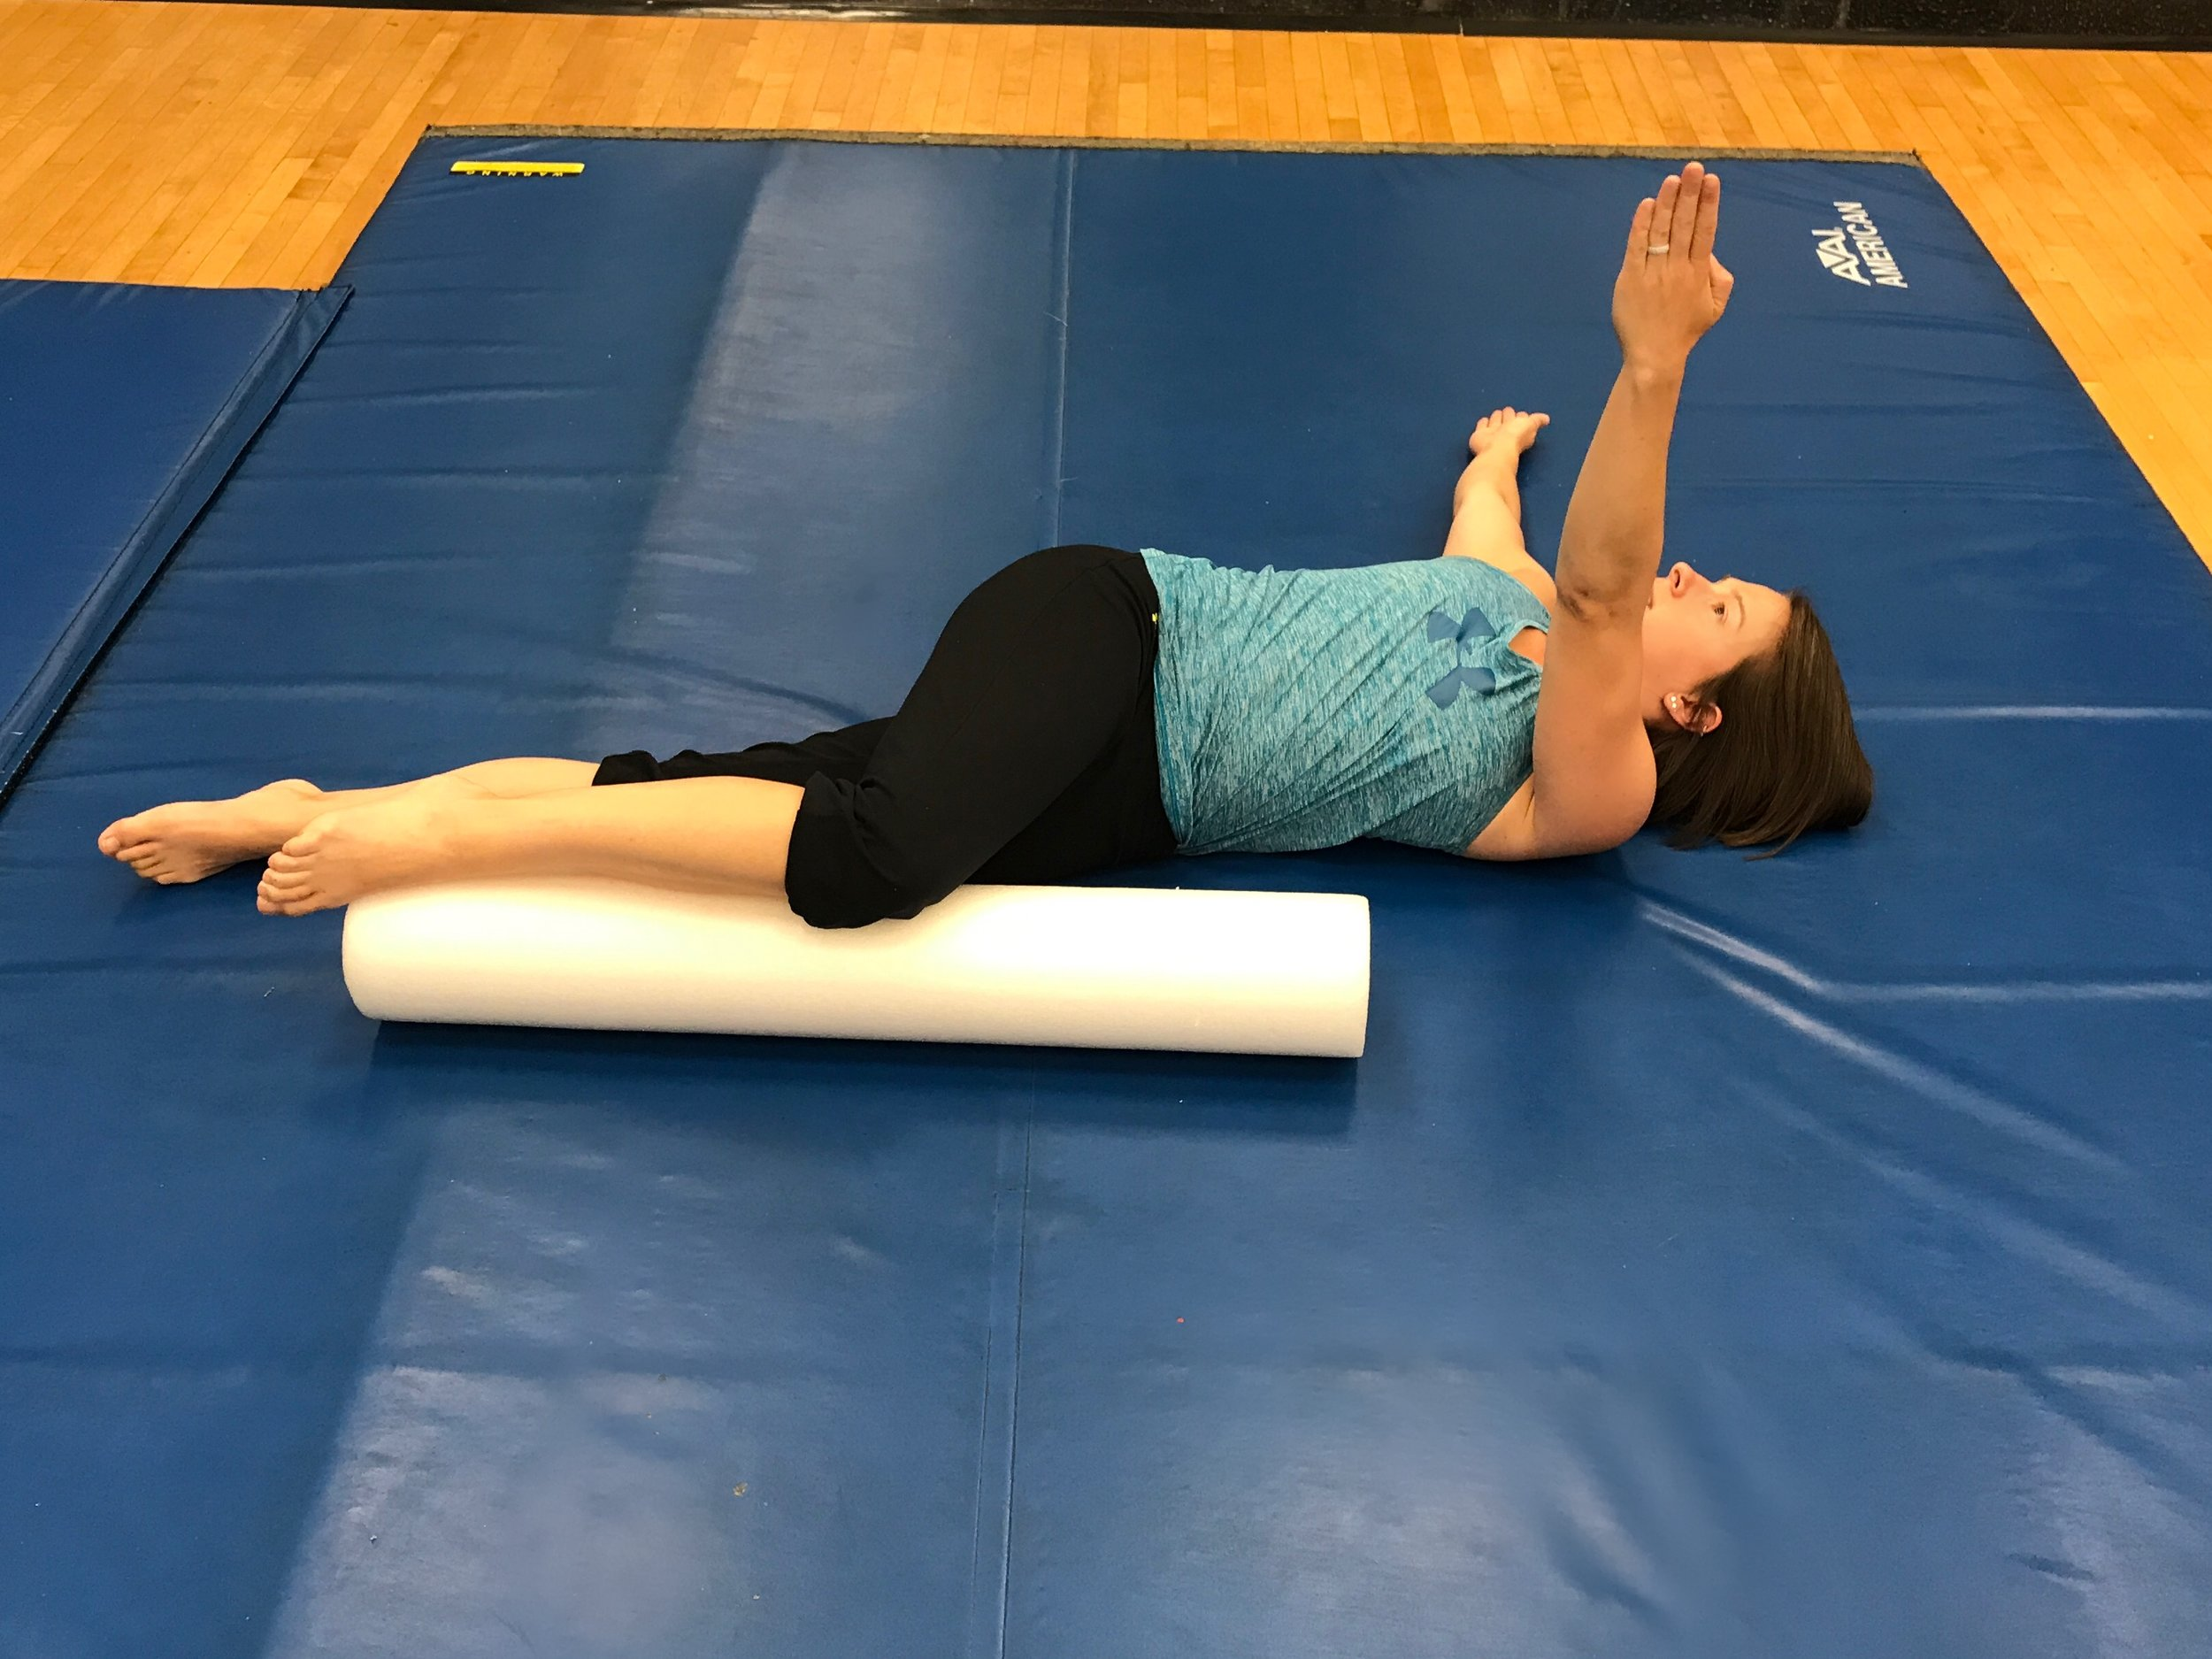 """Then, while still keeping the knee on the roll, rotate """"the box"""" by twisting the upper back such that the top arm is now touching the floor behind you. If you are able, reach the other arm up to the ceiling (think stretch/punch the shoulder forward) to increase the stretch."""